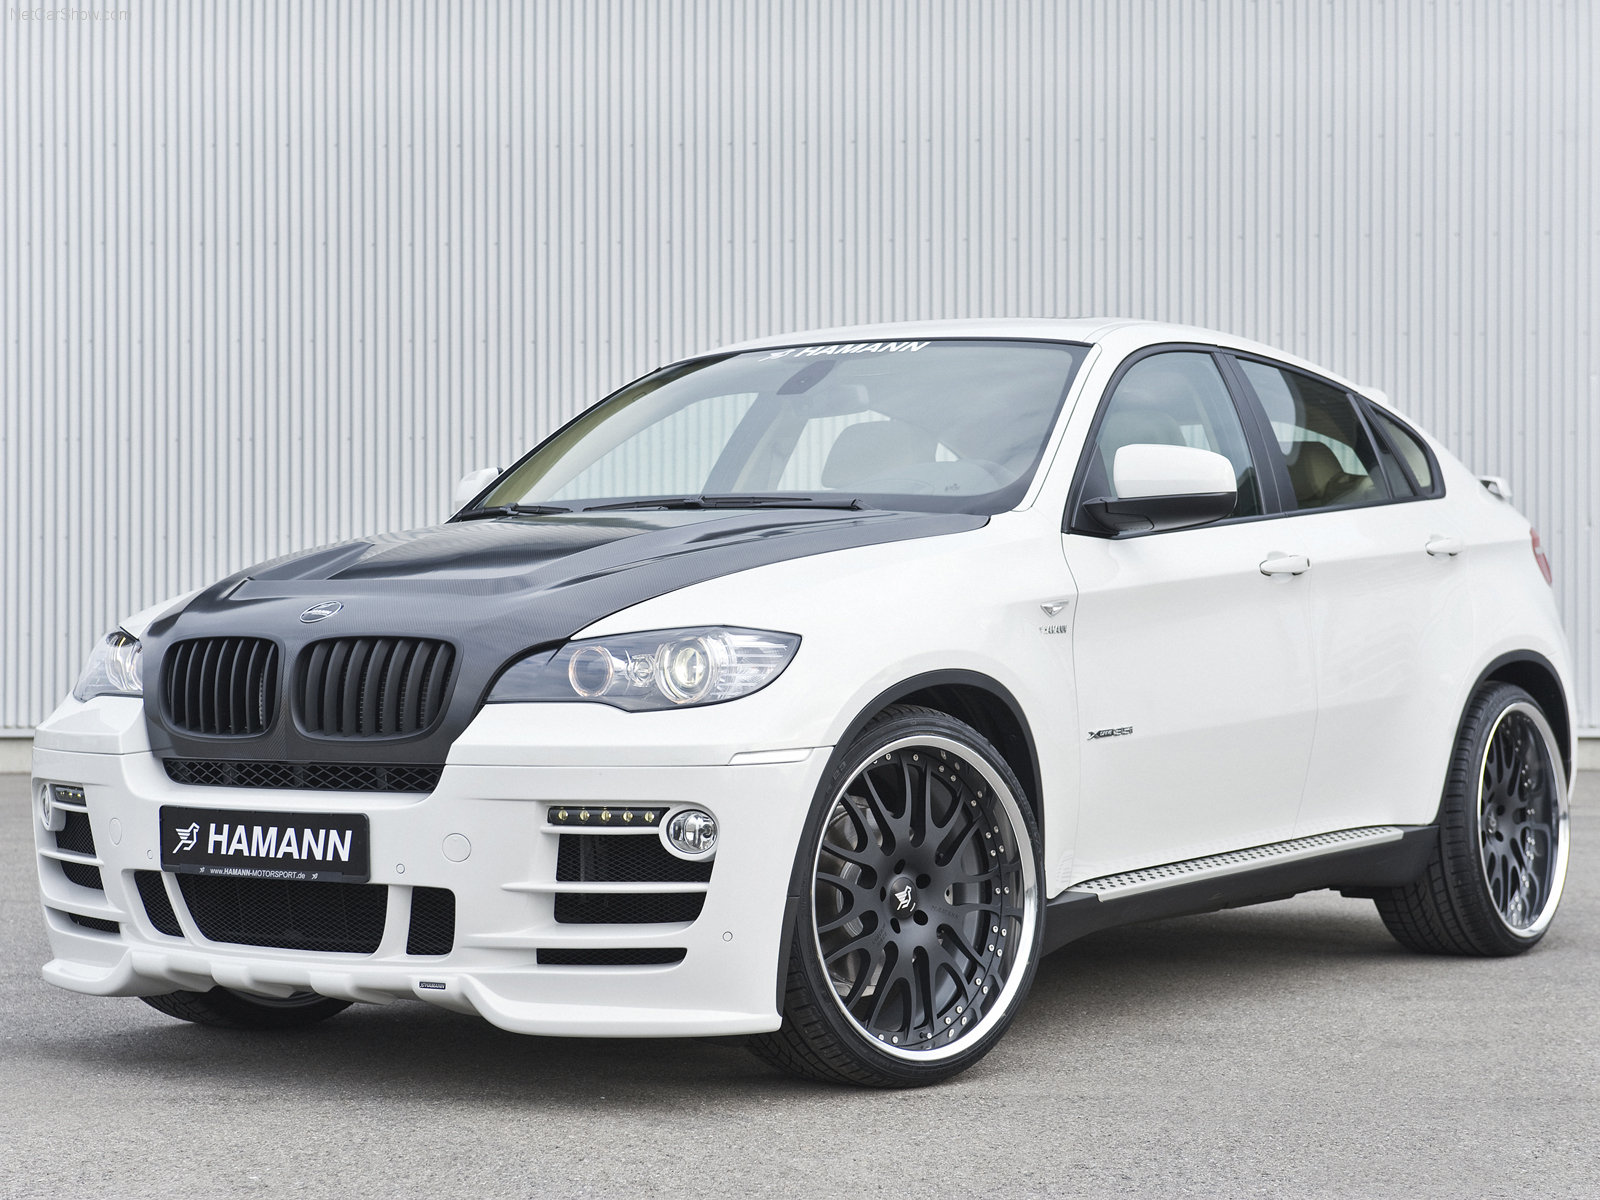 Hamann Bmw X6 Photos Photogallery With 10 Pics Carsbase Com